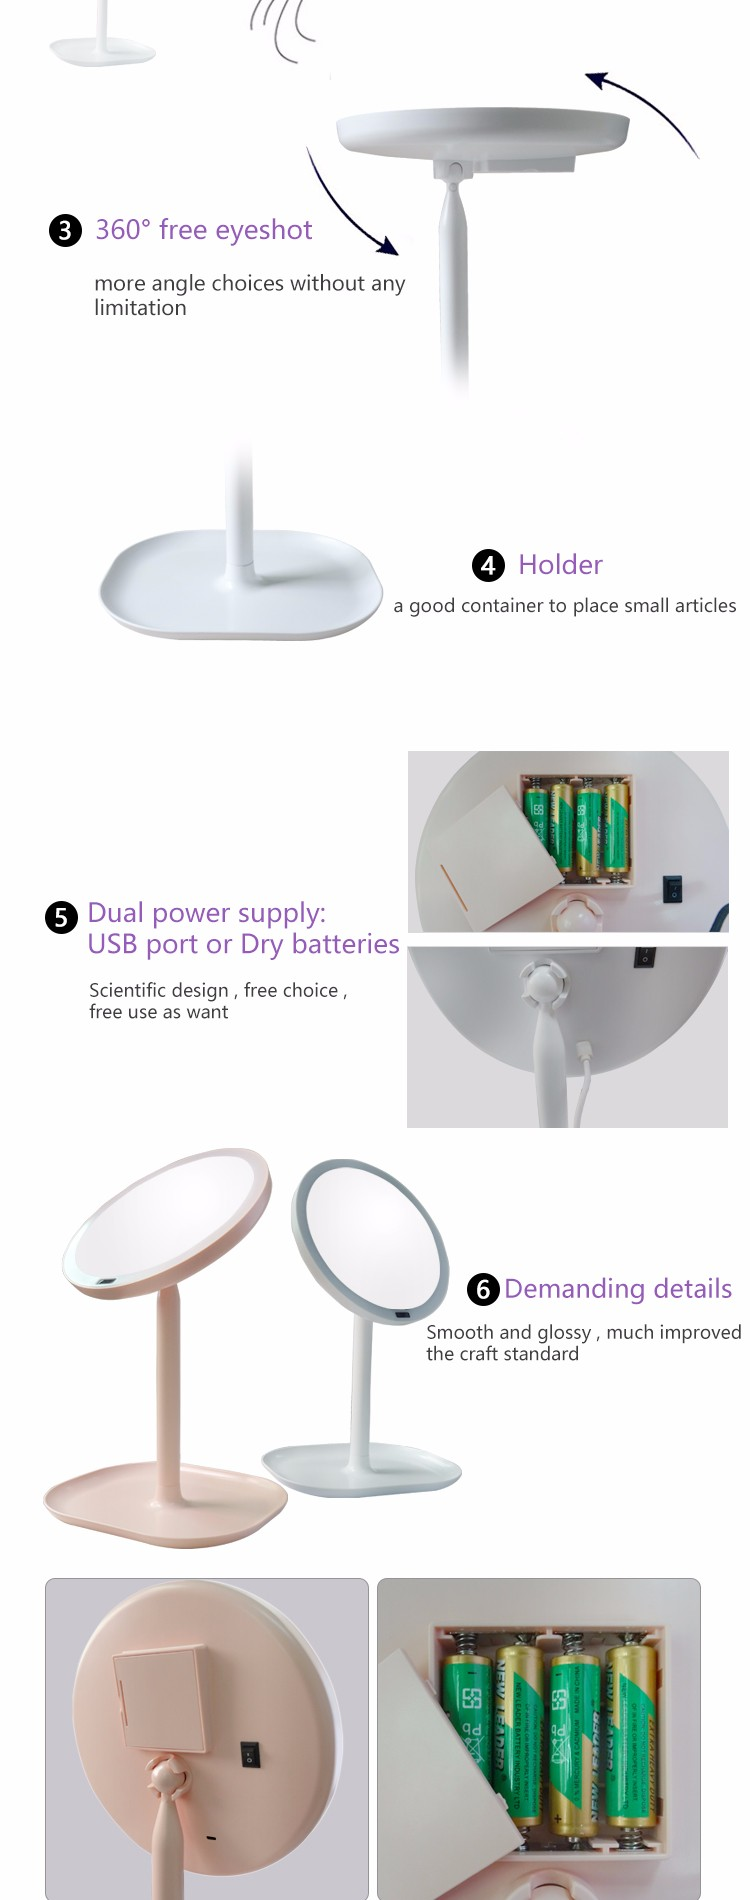 Best Selling Sersor Round Magnifier Custom Led Mirror Light Made In China